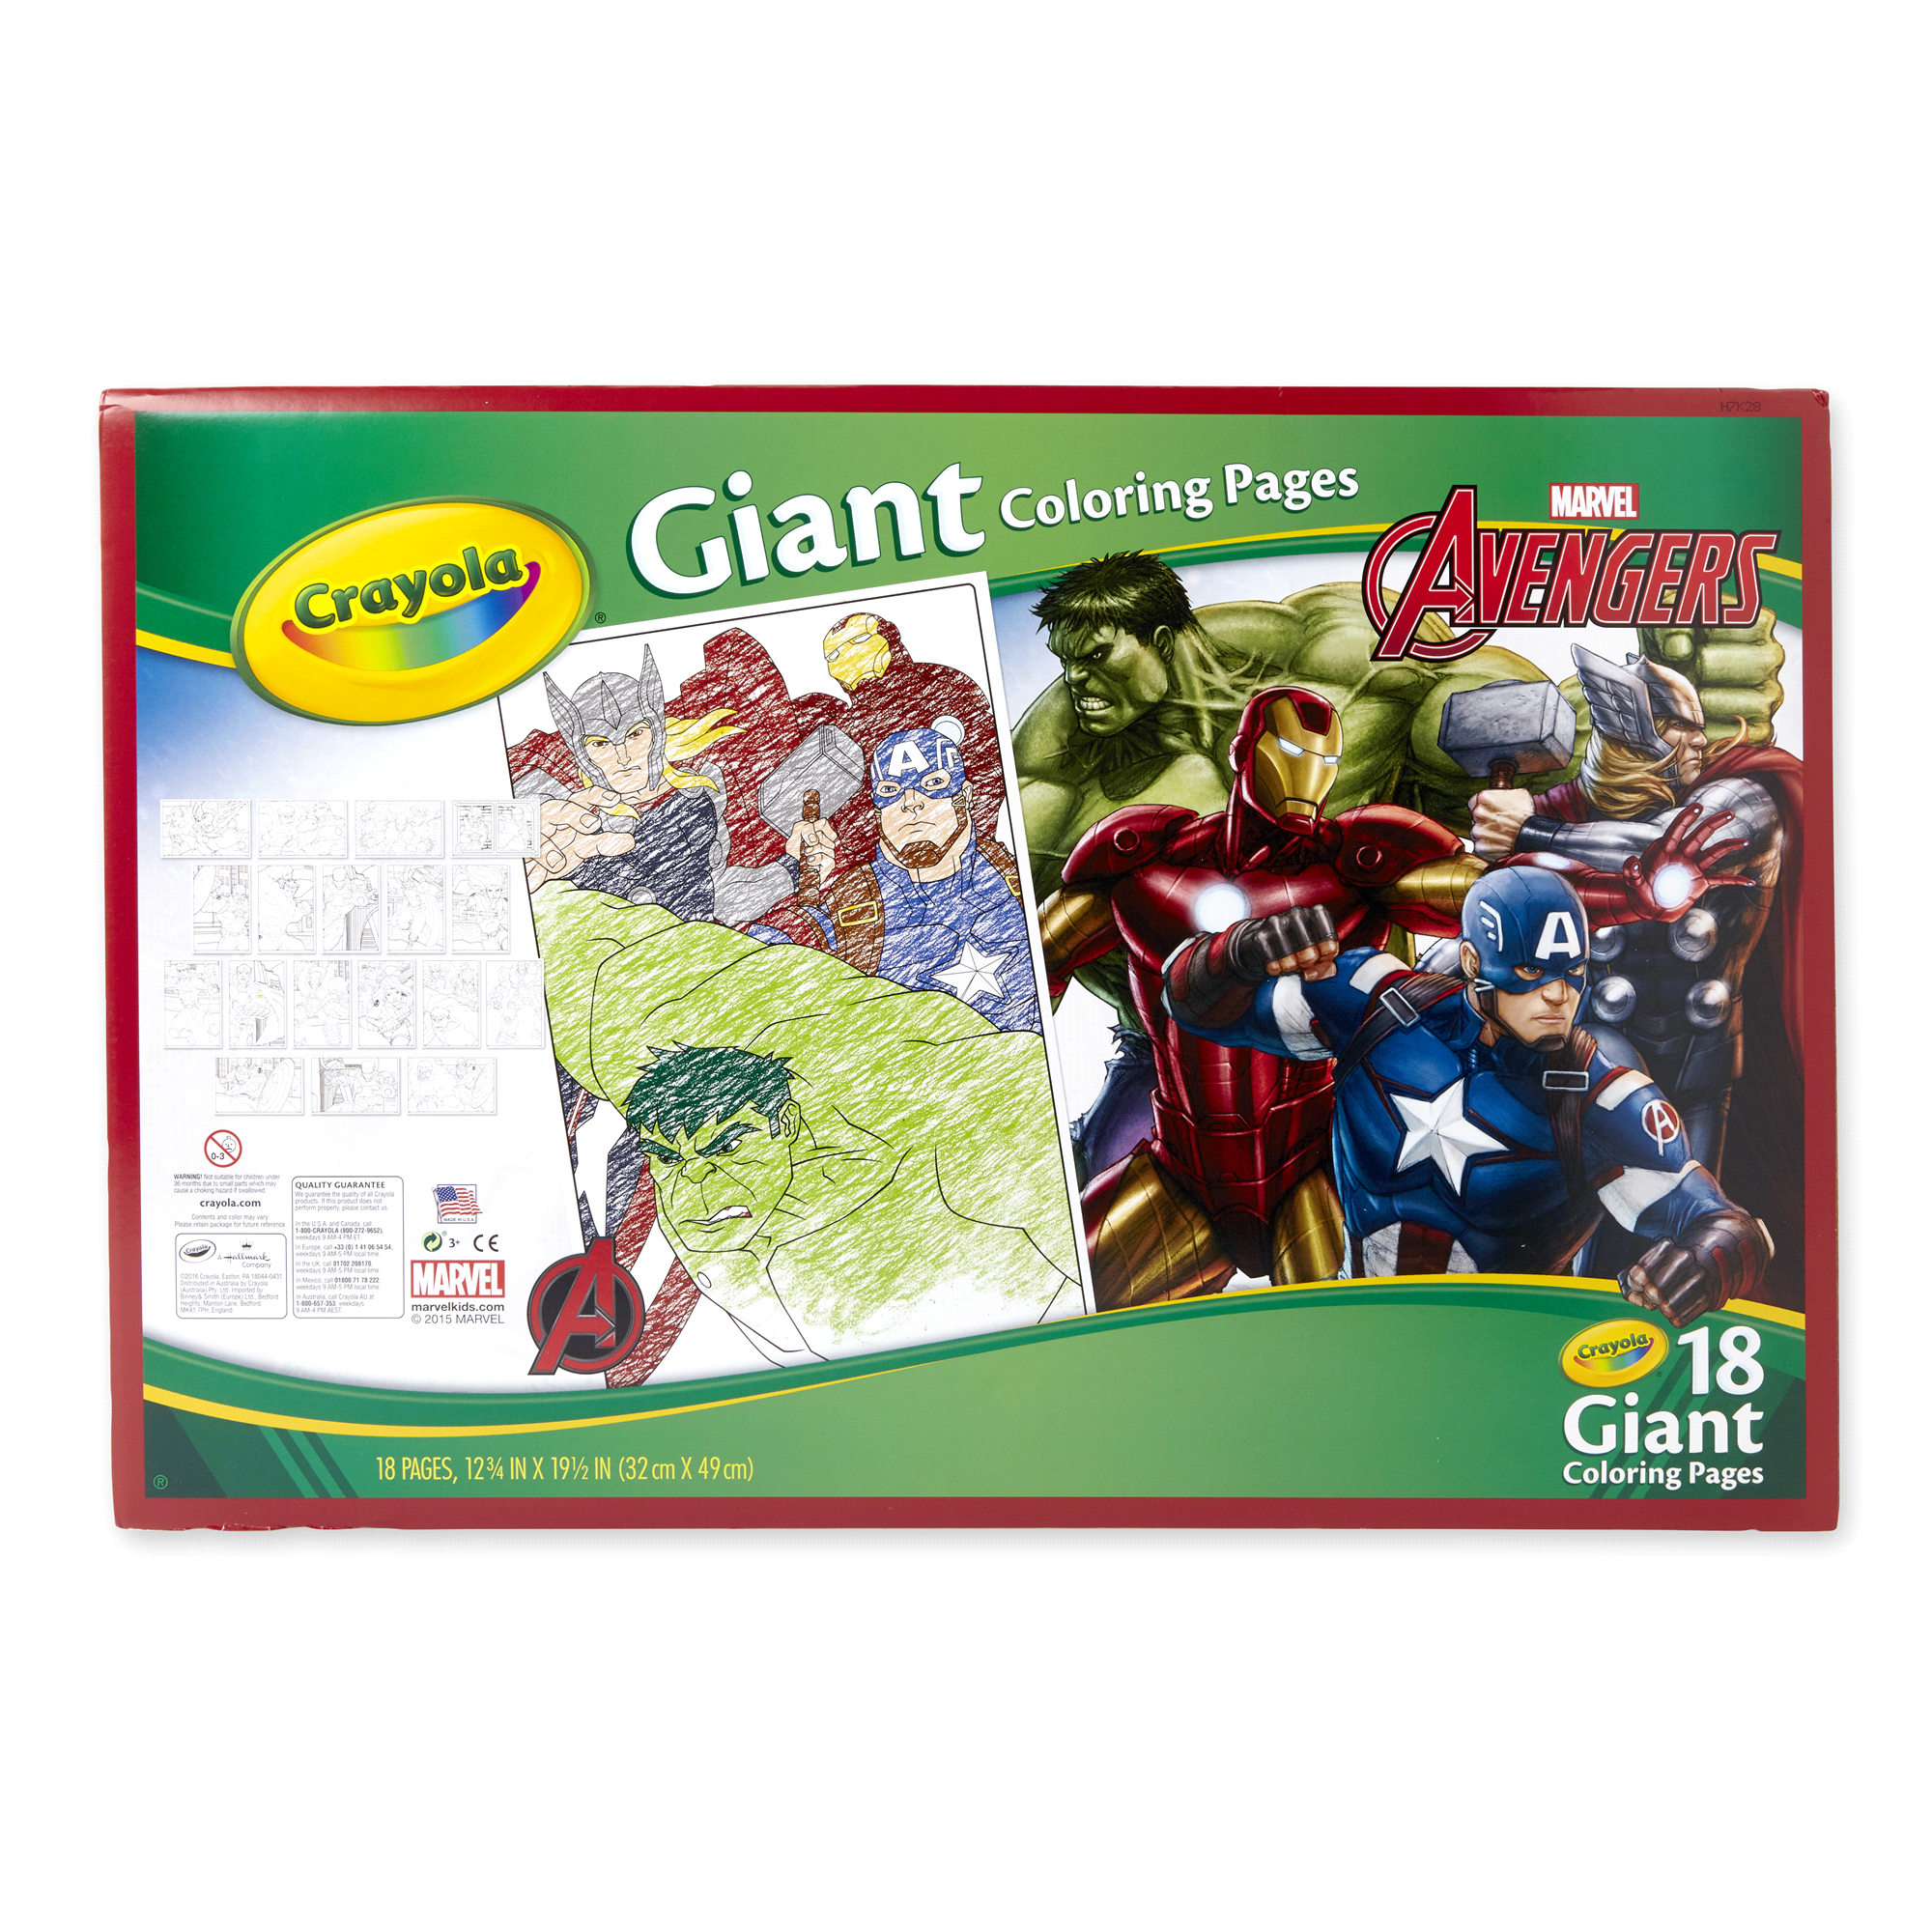 Crayola Giant Coloring Pages Avengers | Meijer.com